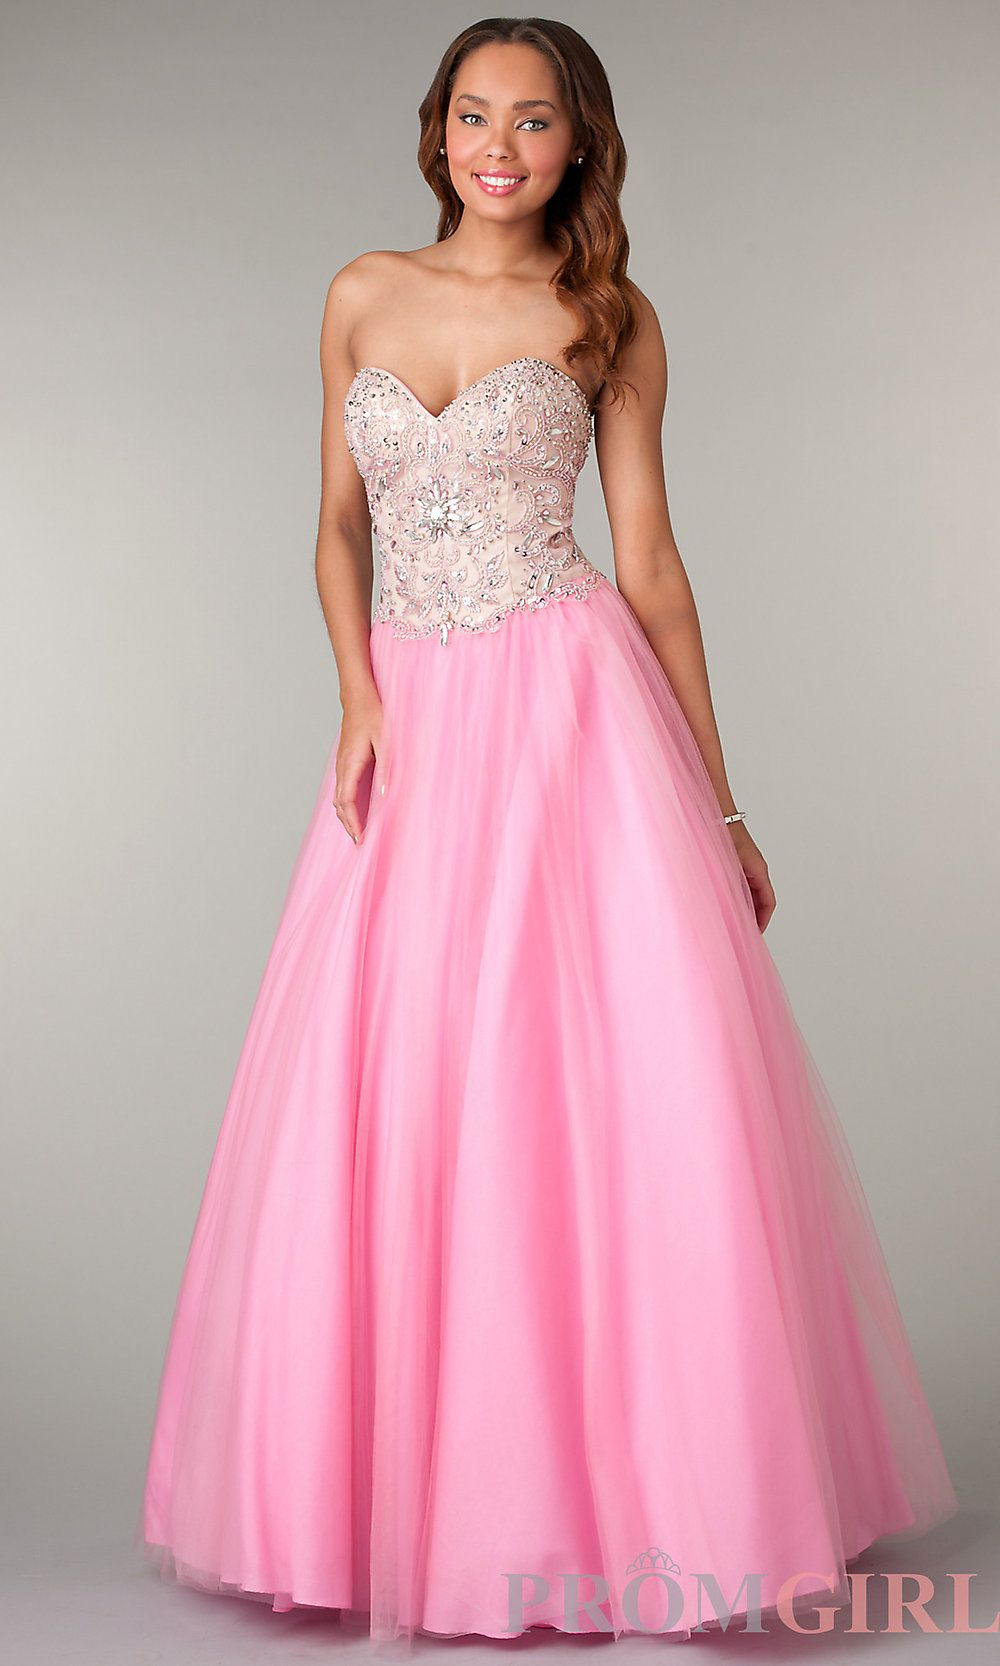 Prom Dresses, Celebrity Dresses, Sexy Evening Gowns - PromGirl ...